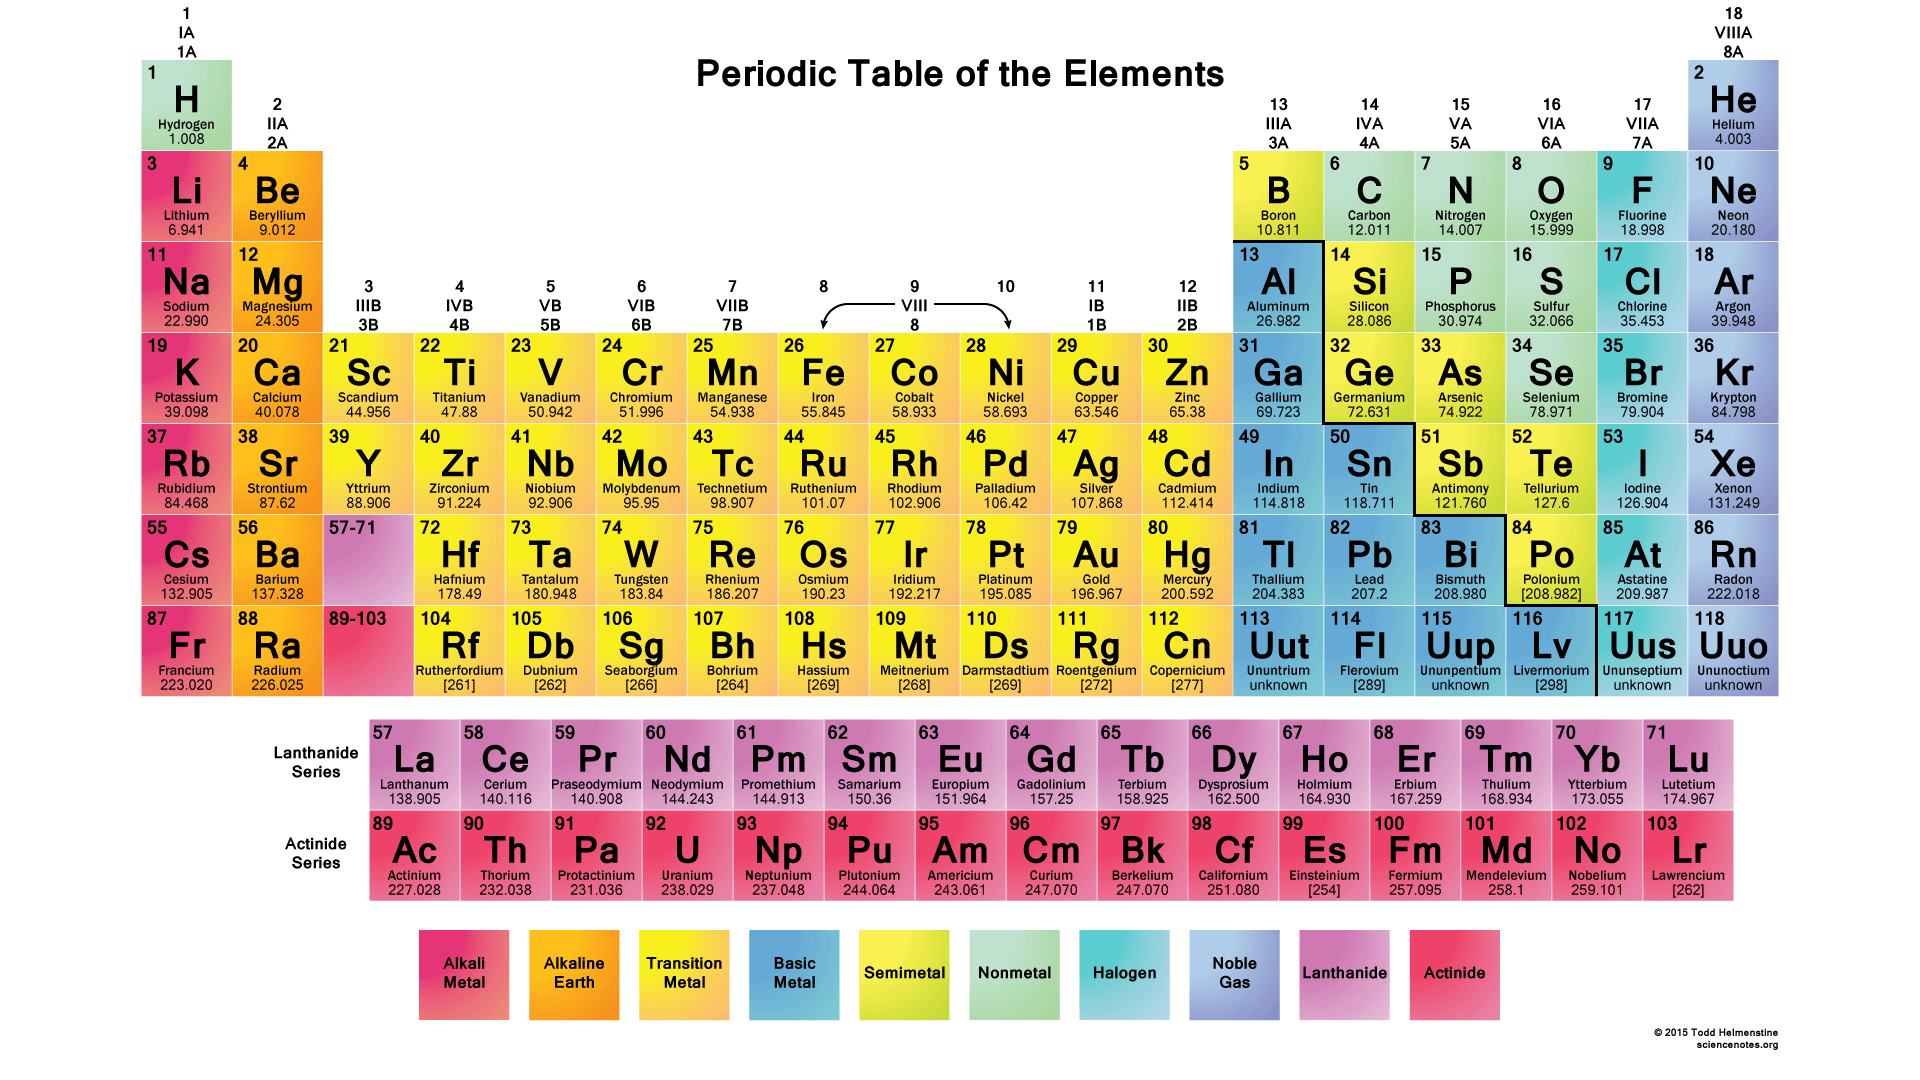 Periodic table of mixology list images periodic table images periodic table of mixology list gallery periodic table images periodic table of mixology list gallery periodic gamestrikefo Choice Image